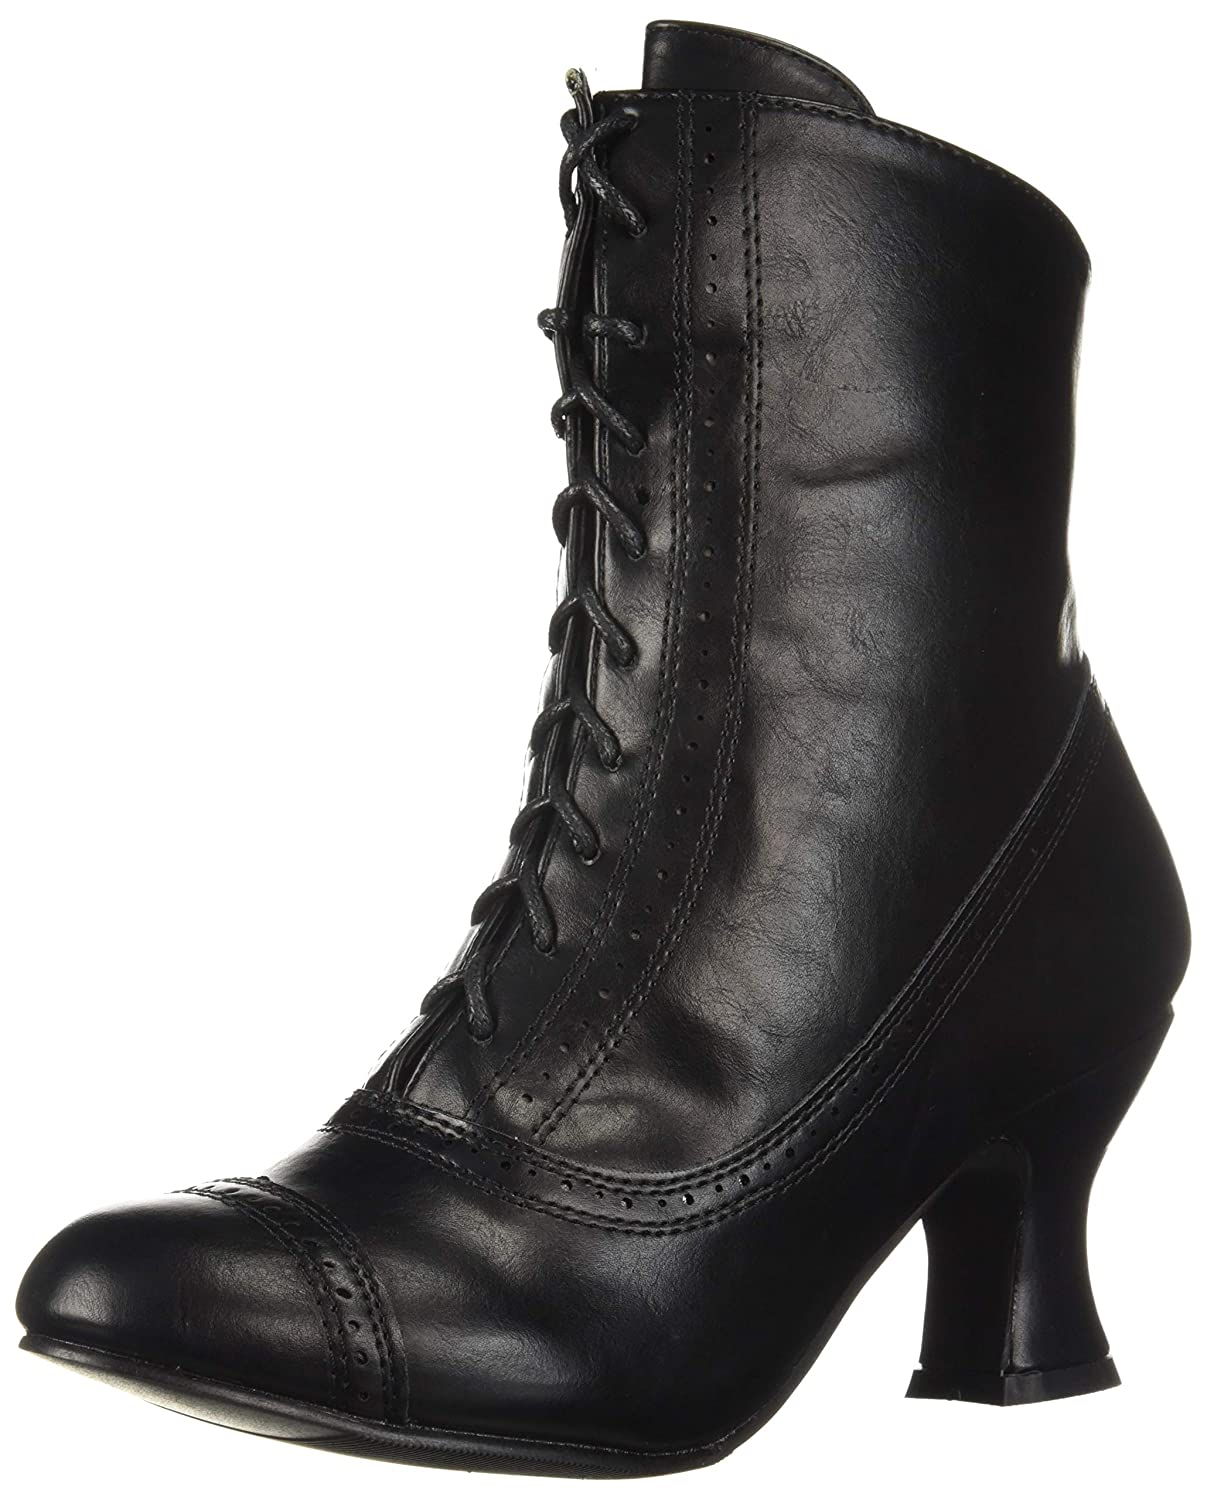 Vintage Boots, Granny Boots, Retro Boots Ellie Shoes Womens 253-sarah Mid Calf Boot �43.09 AT vintagedancer.com